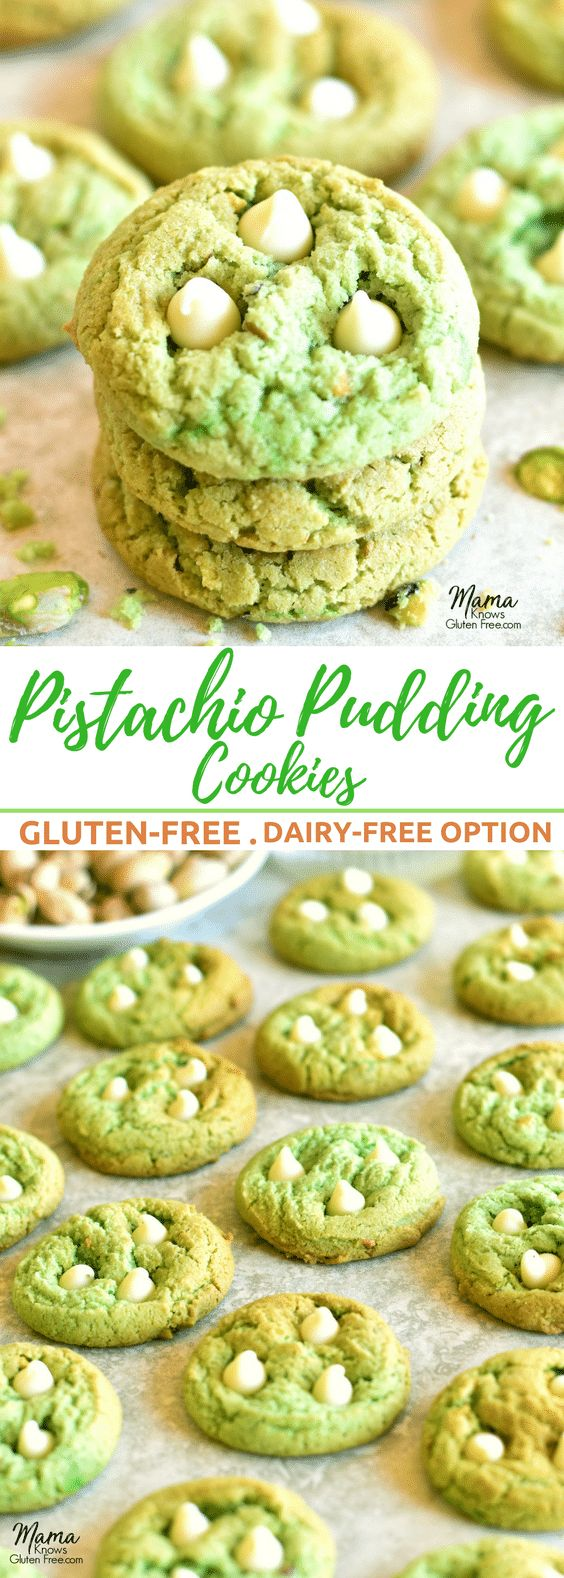 Pistachio Pudding Cookies {Gluten-Free, Dairy-Free Option} - Mama Knows Gluten Free